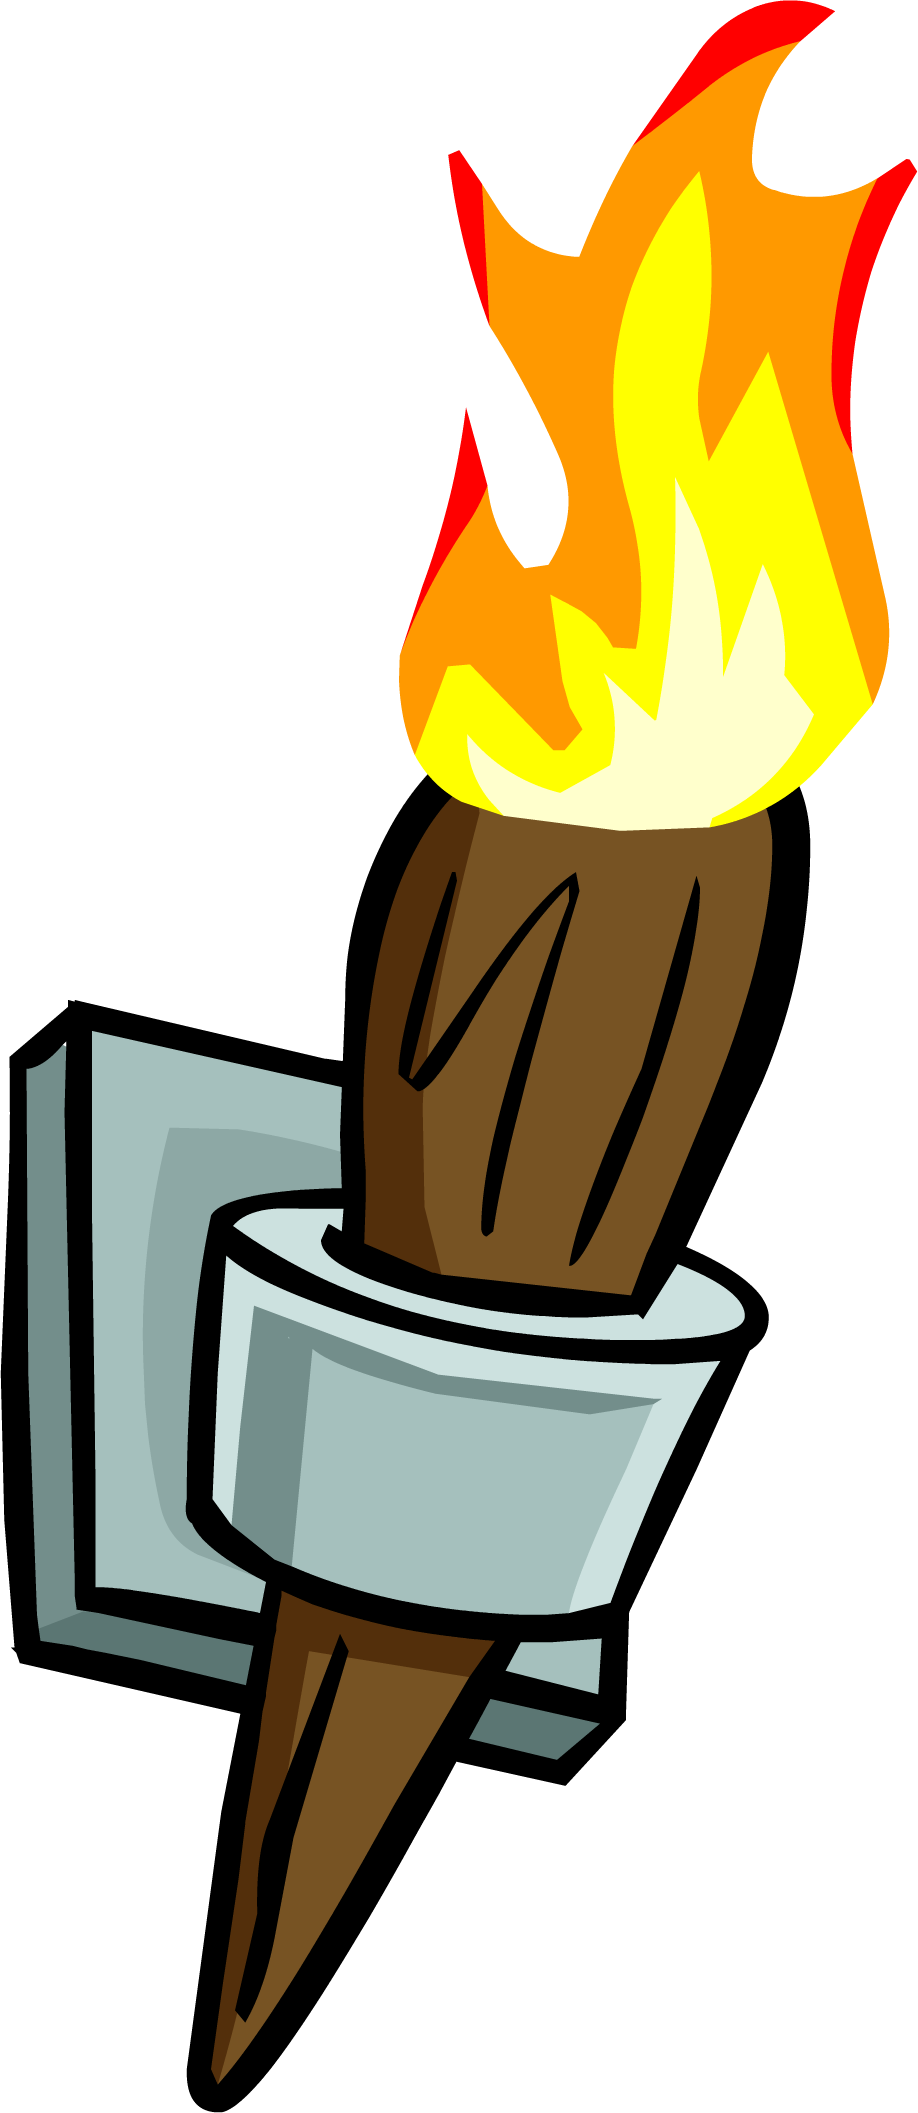 Wall torch png. Image club penguin wiki